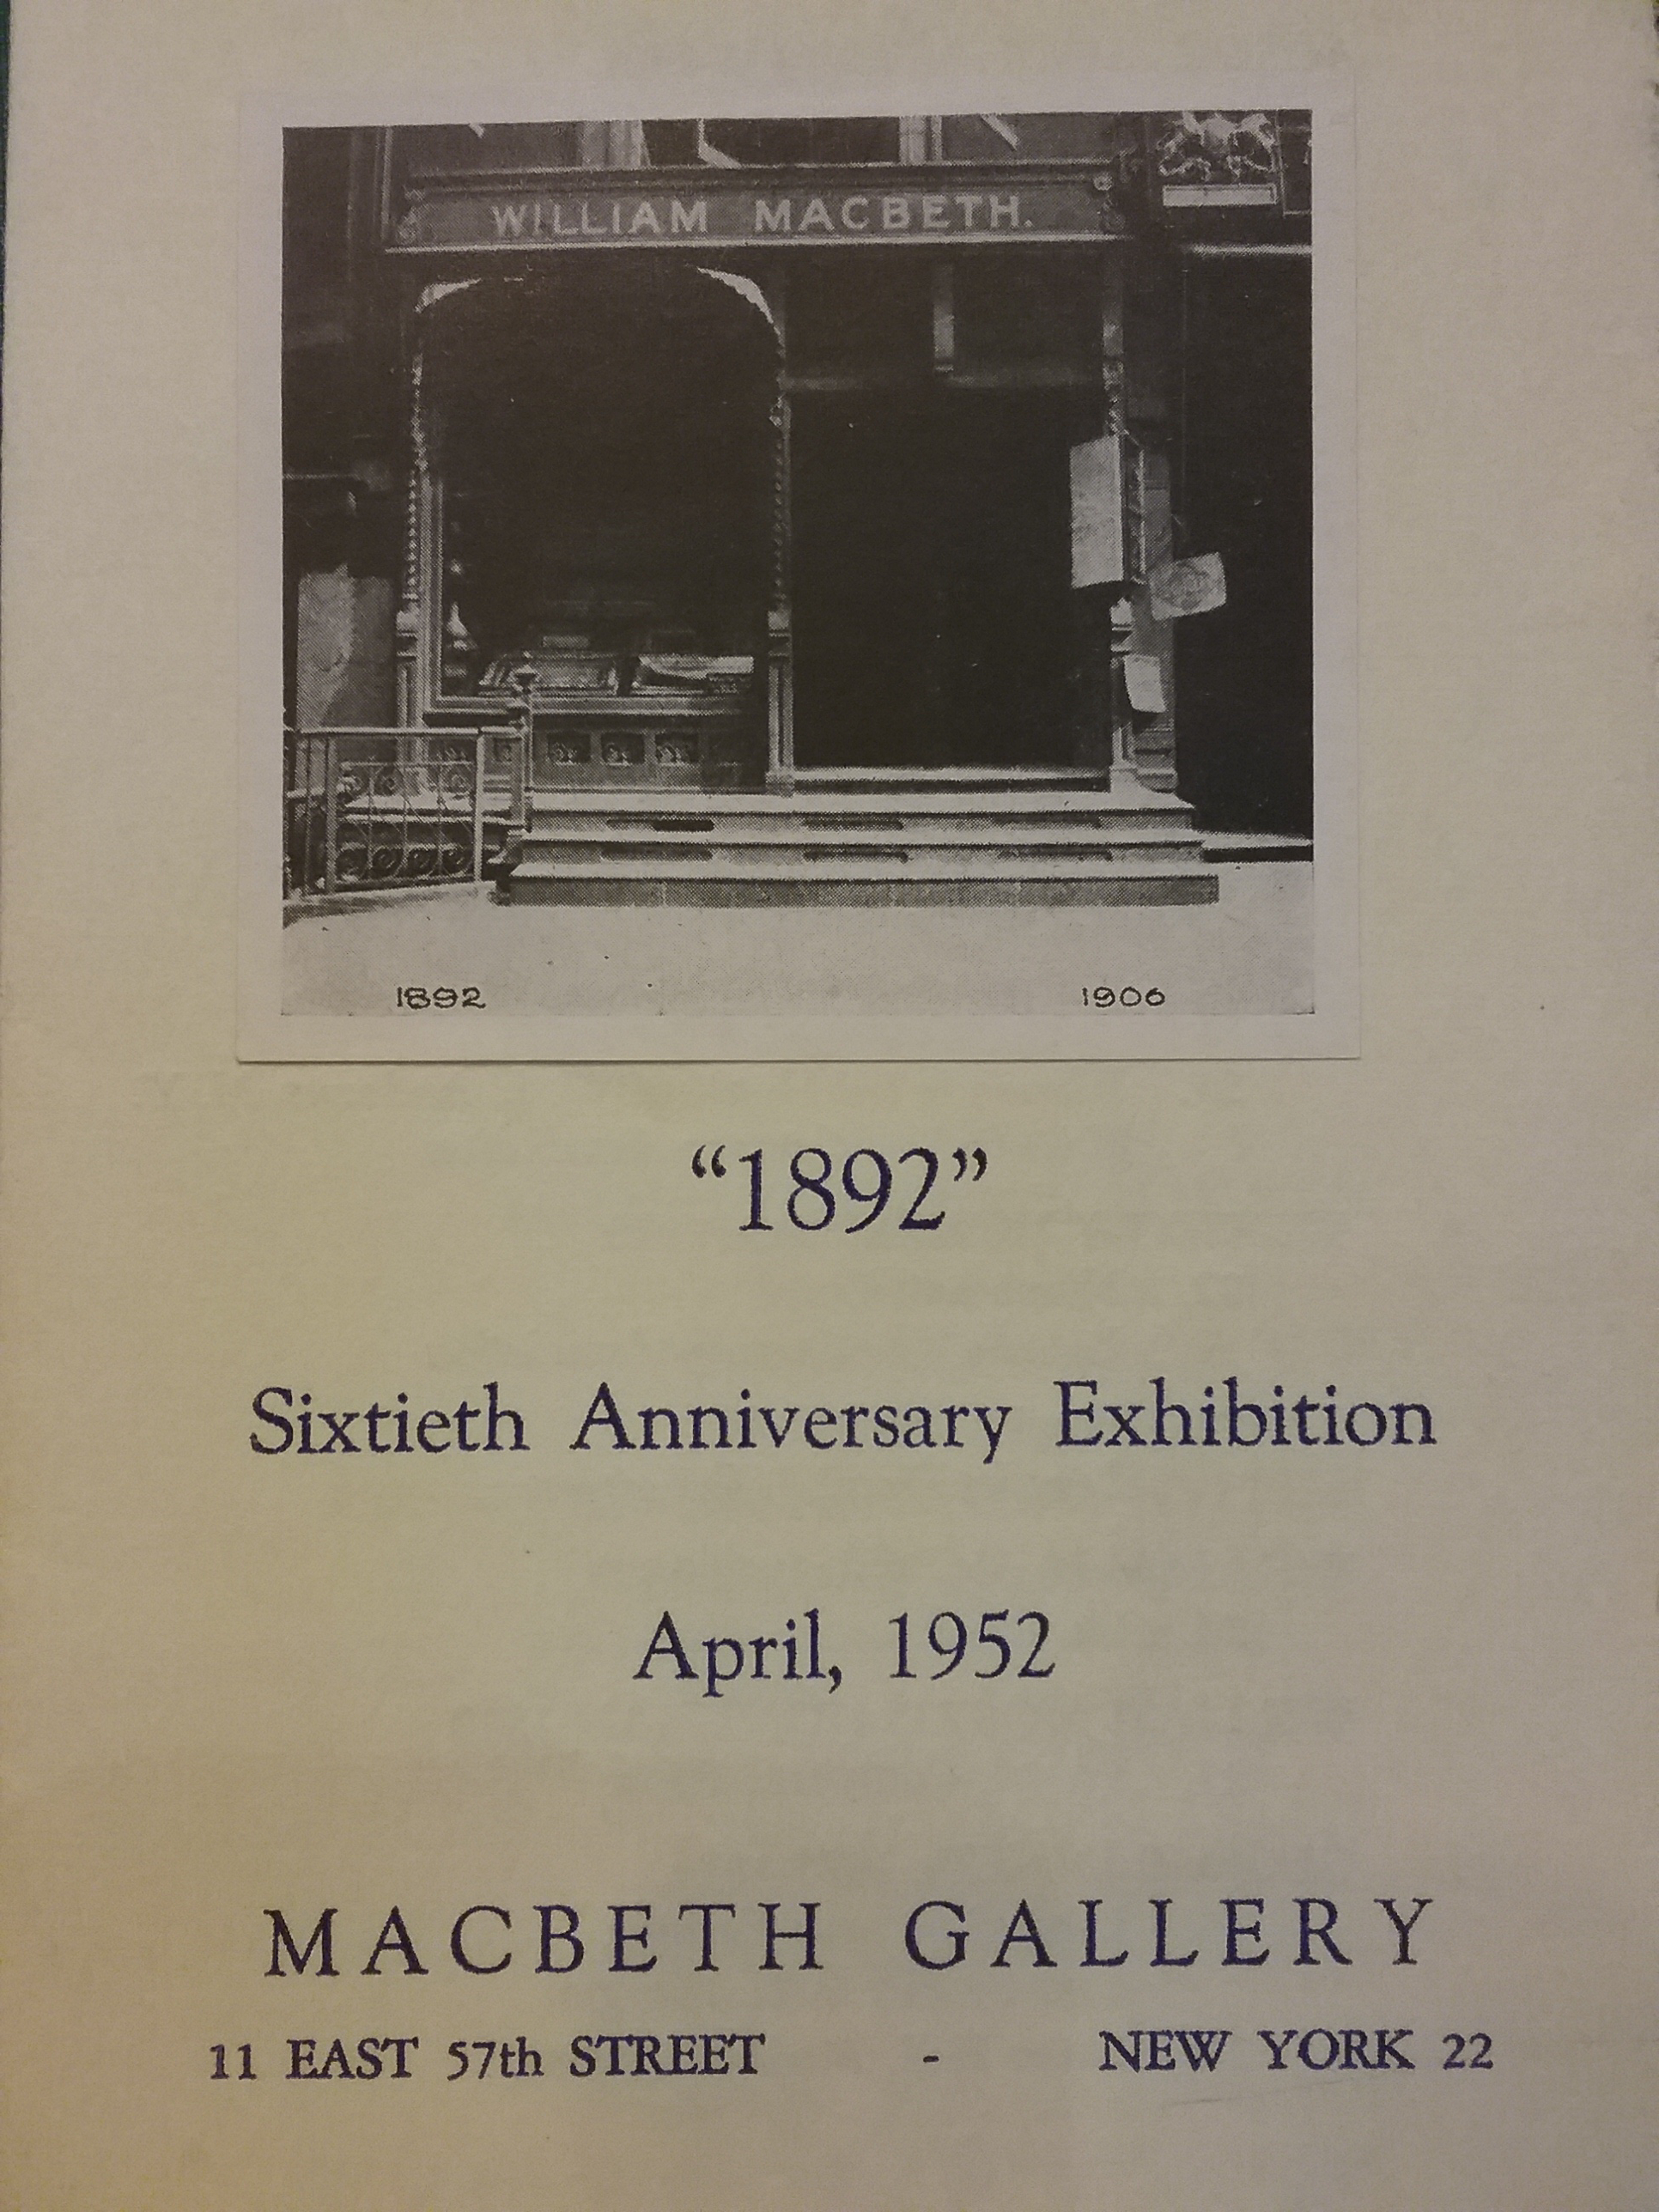 MacBeth Gallery Catalog, 1952